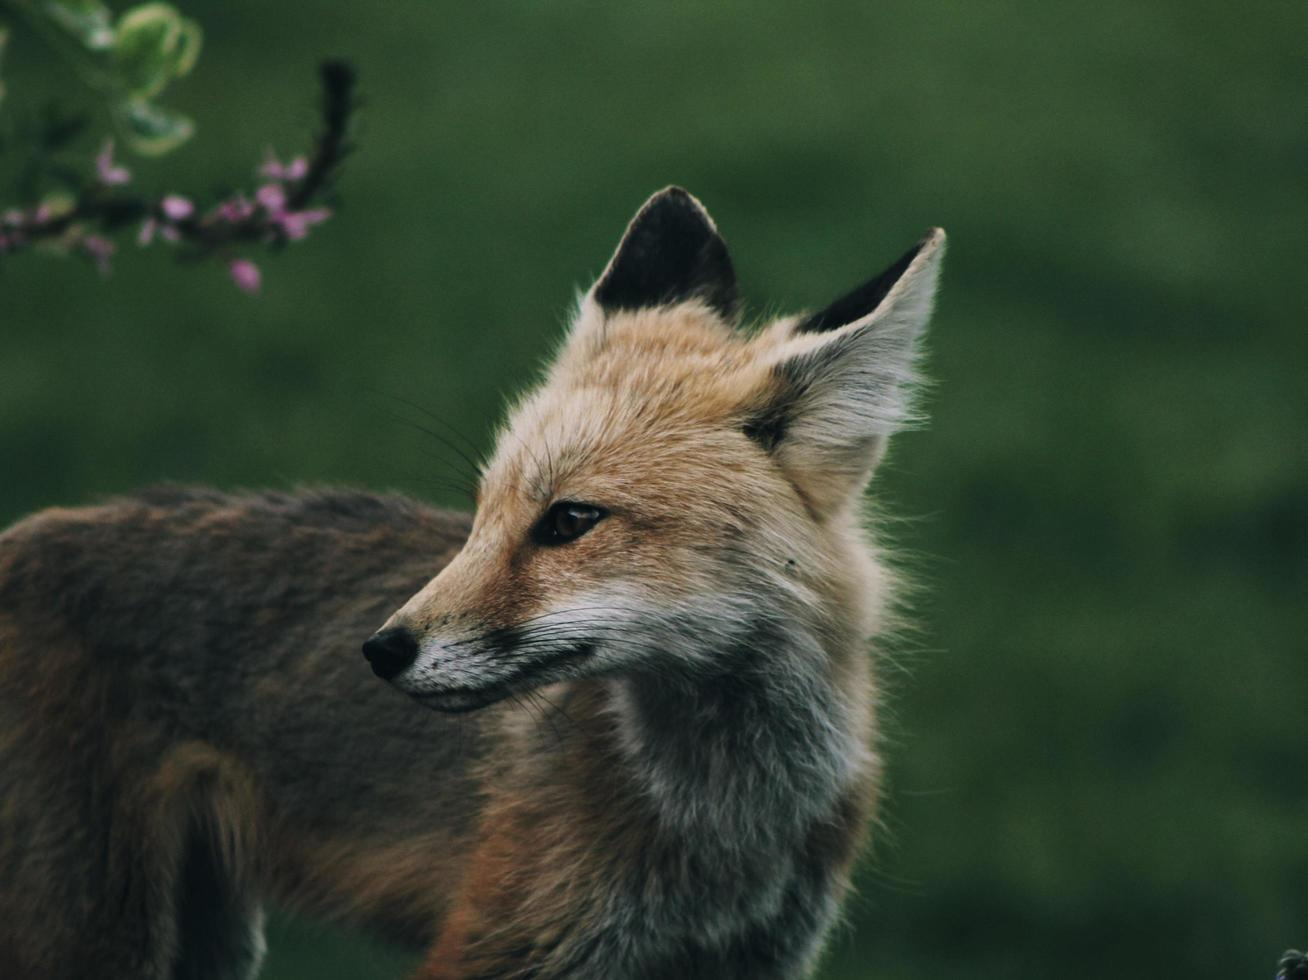 Red fox in the wild photo